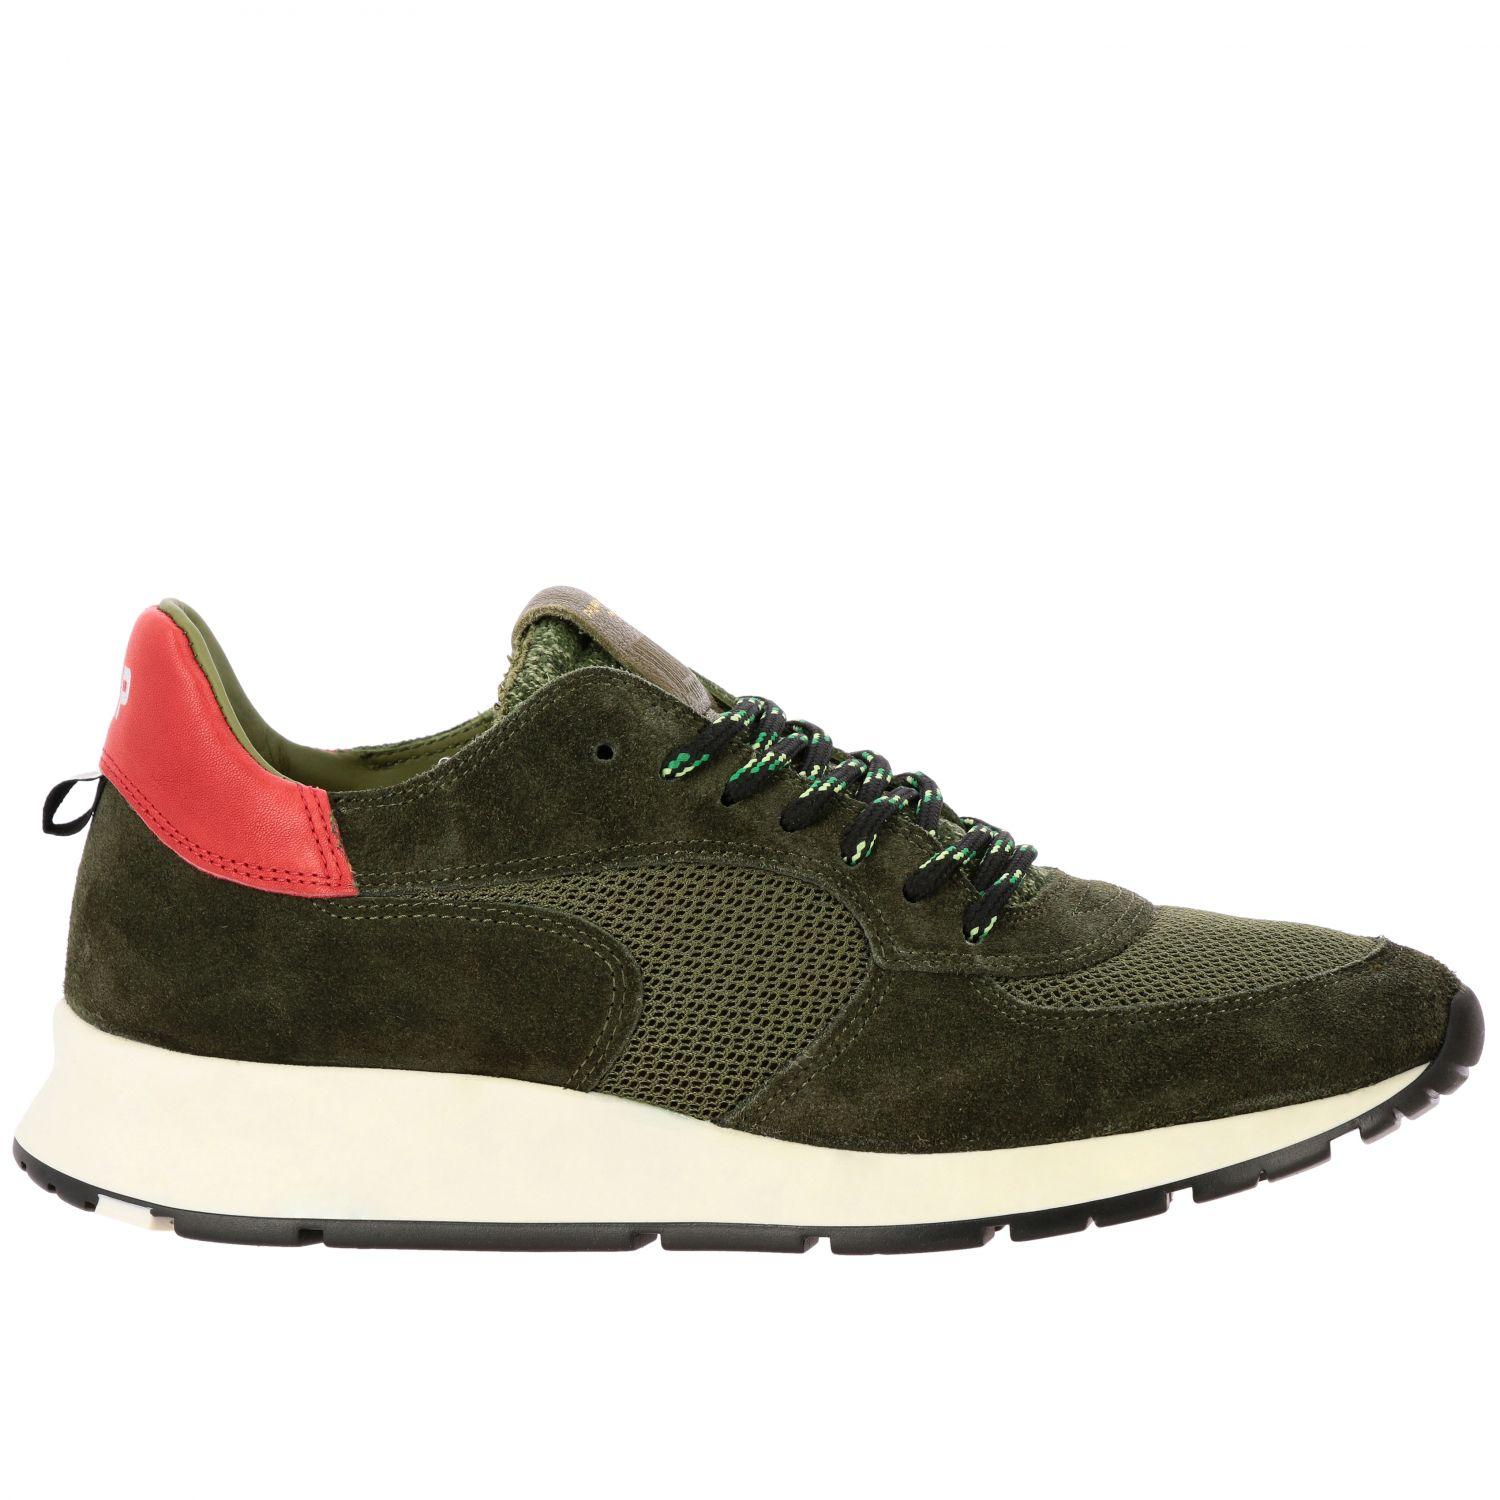 Shoes men Philippe Model military 1